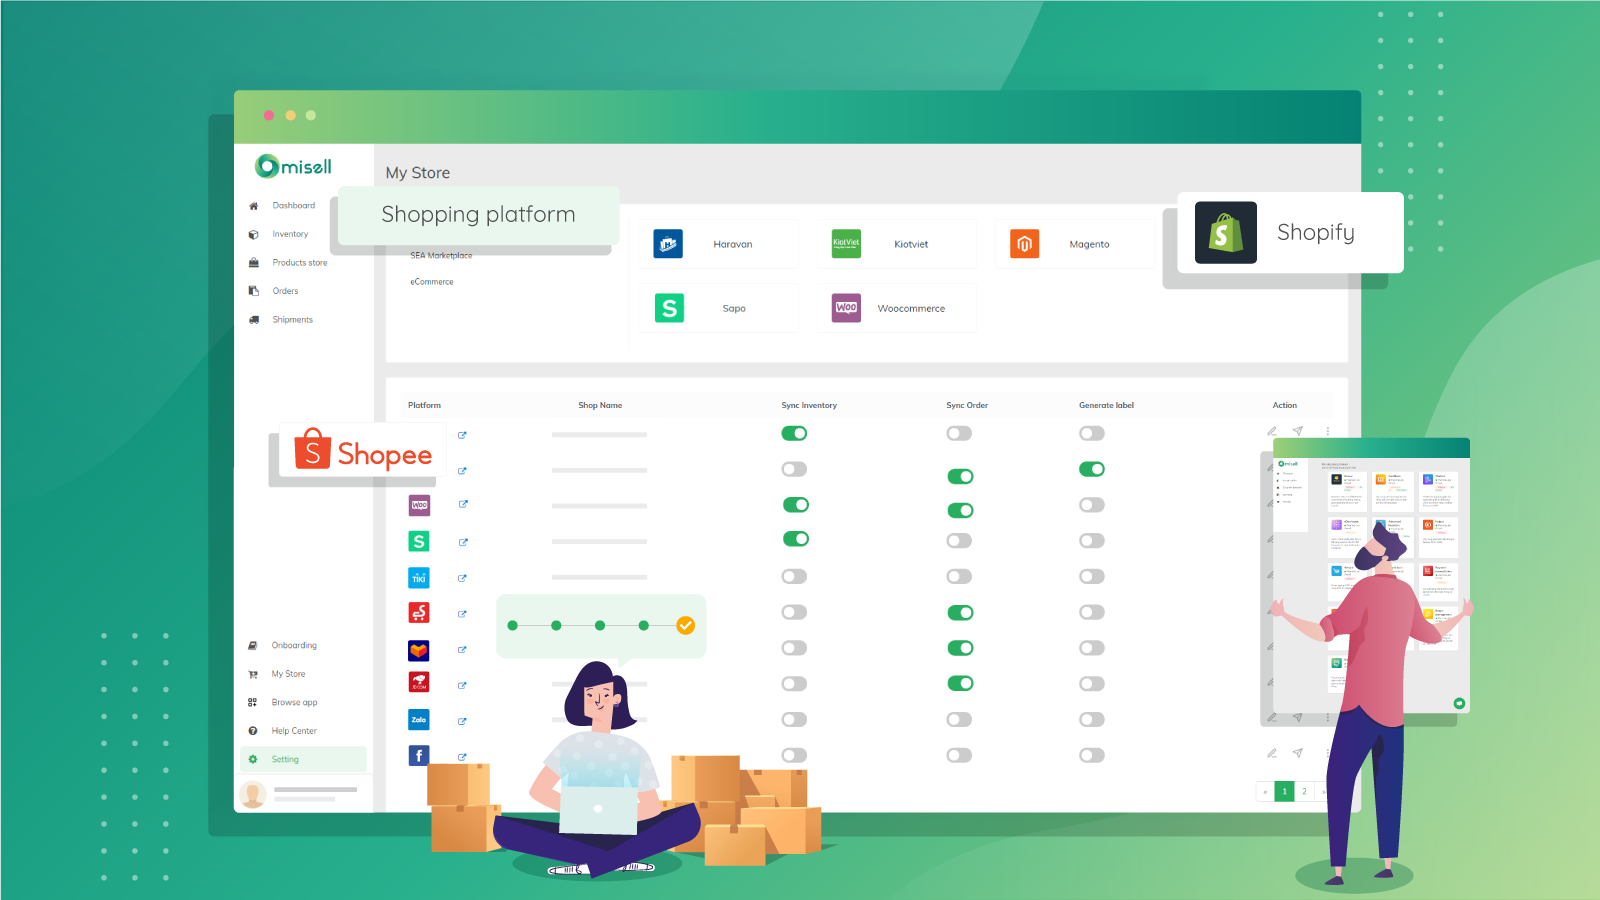 Omisell connect to multiple sales channels